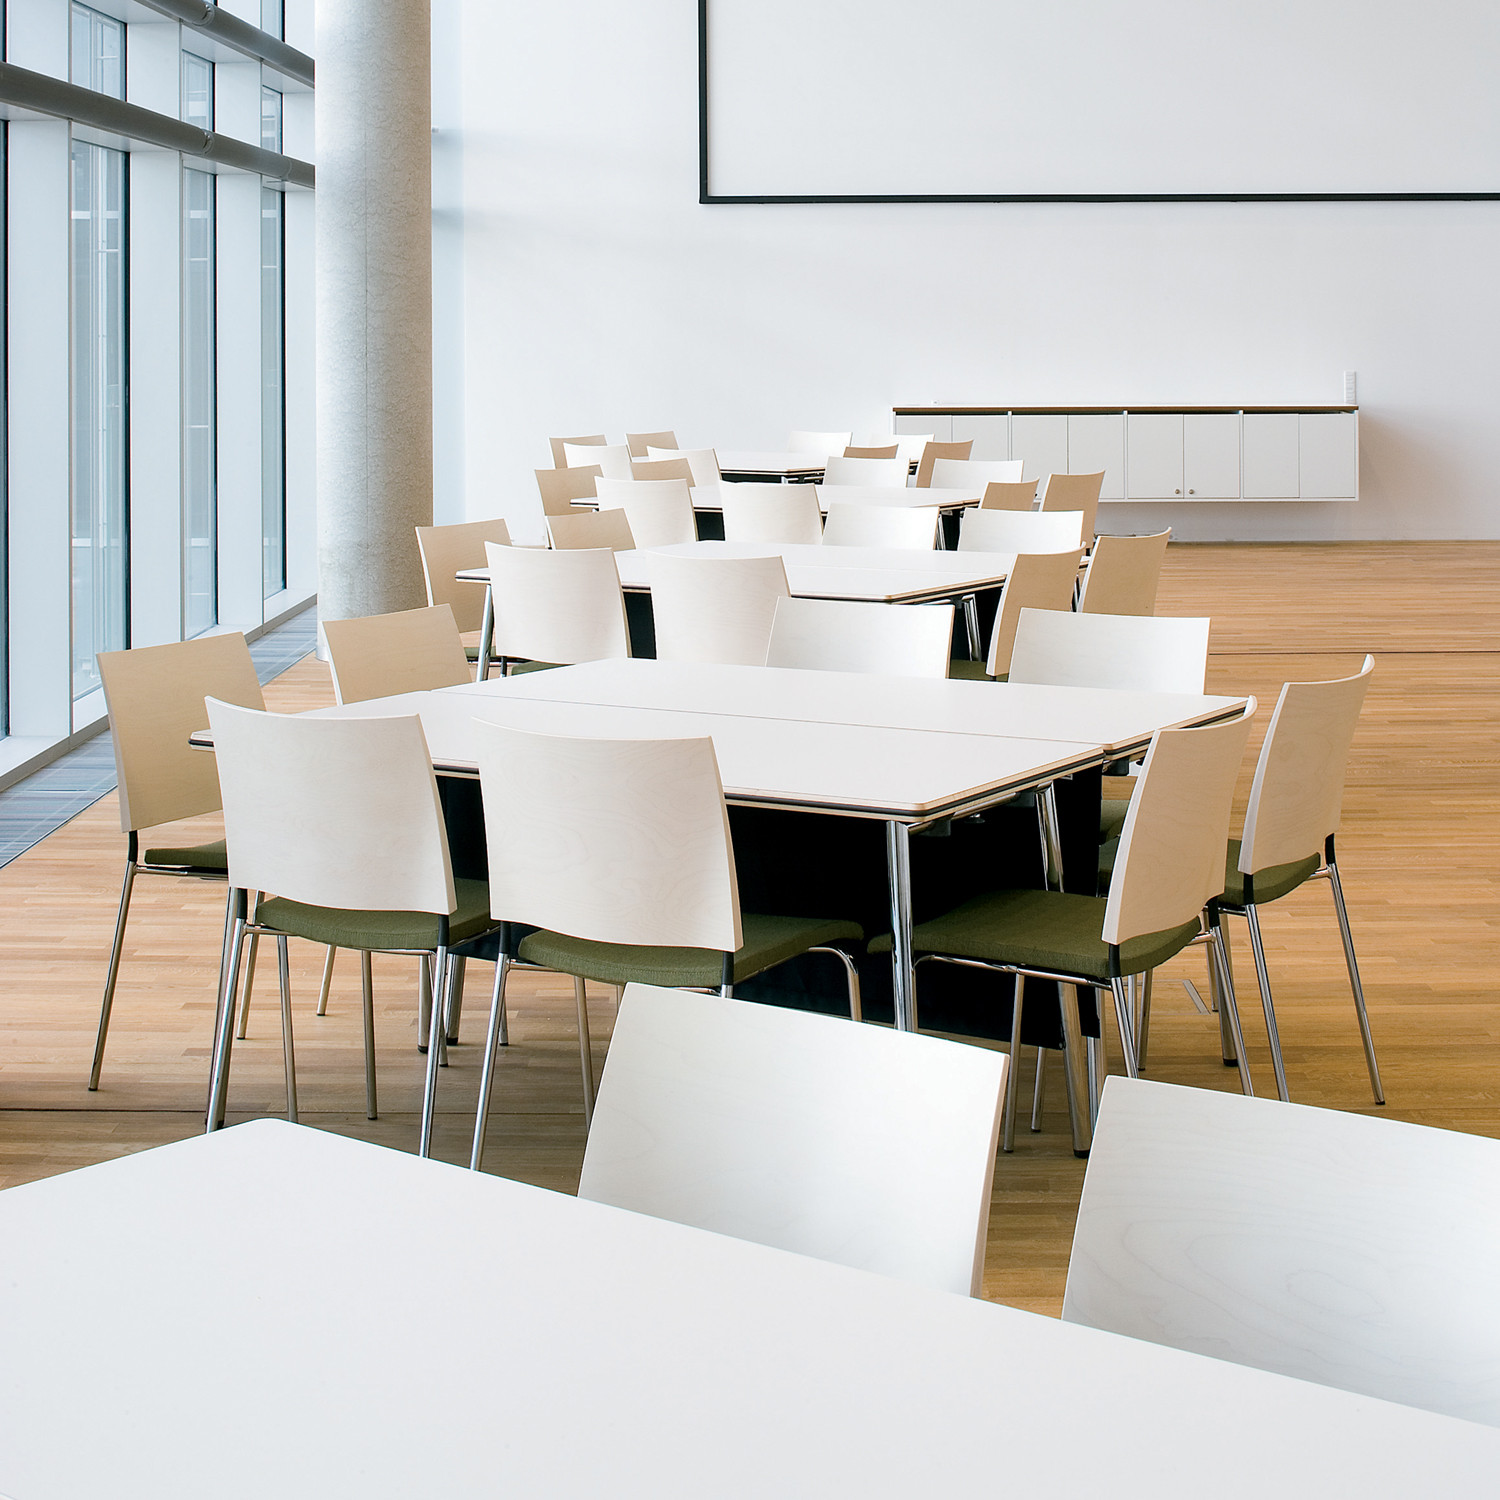 Lammhults Spira Chairs